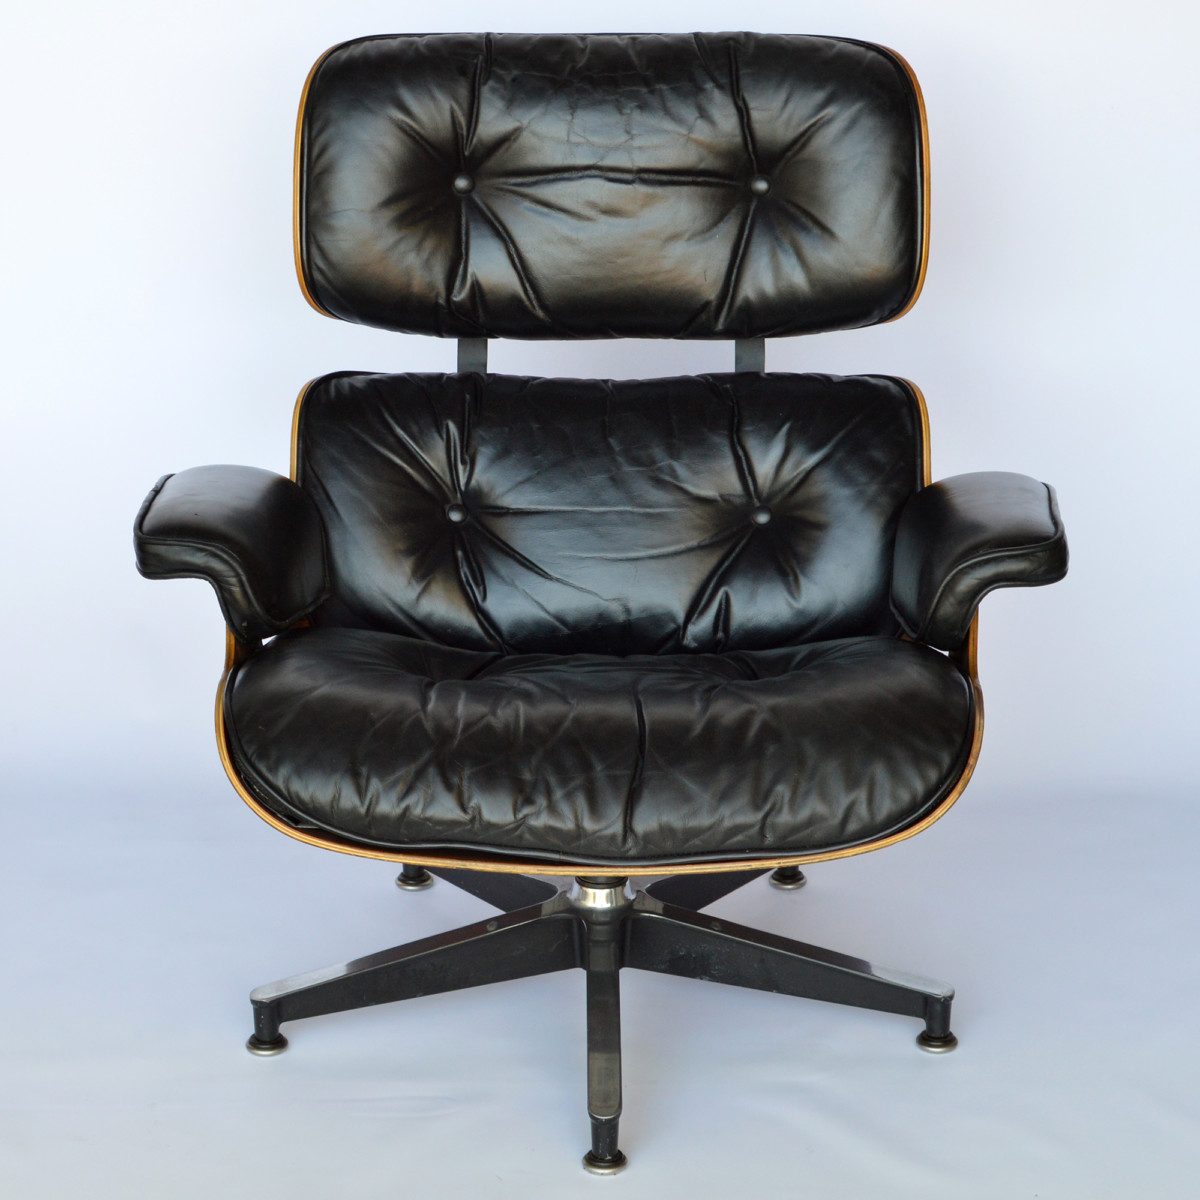 Mauser Sessel Eames Lounge Chair & Ottoman Palisander - Vintage, 1979 Im